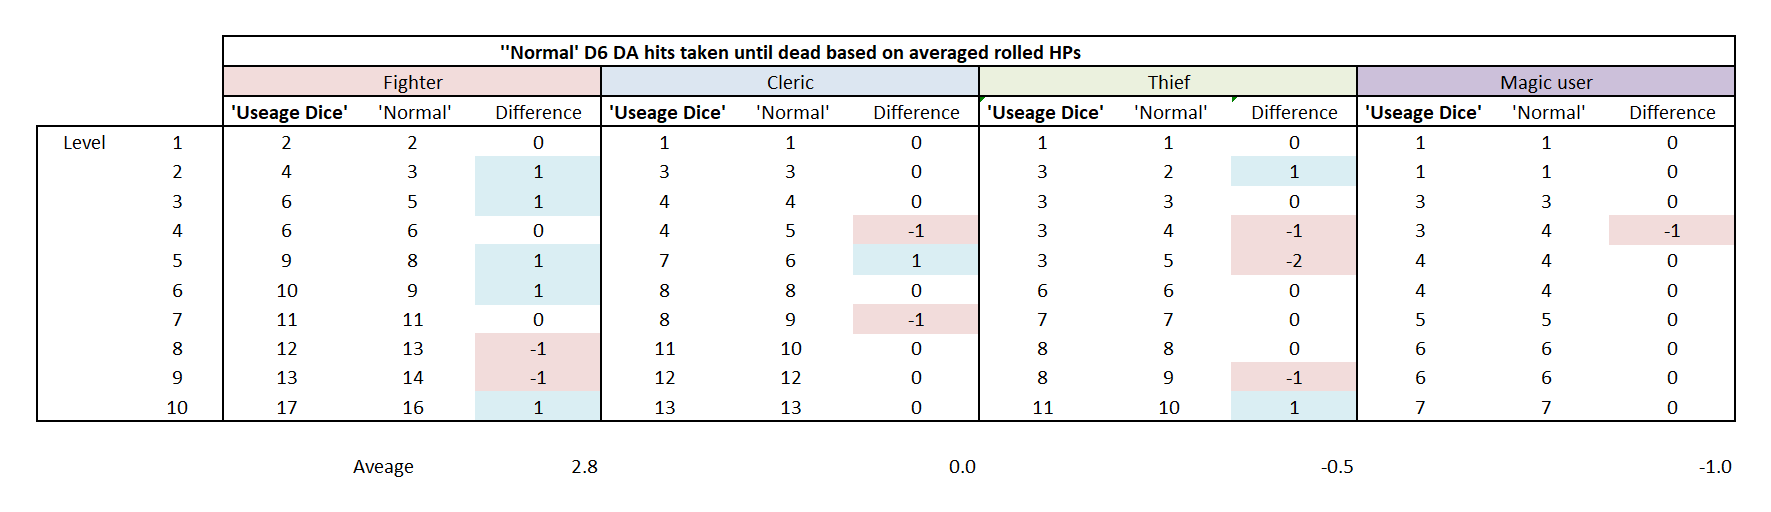 Usage die for HP vs Normal HPs - how many hits can you take on average